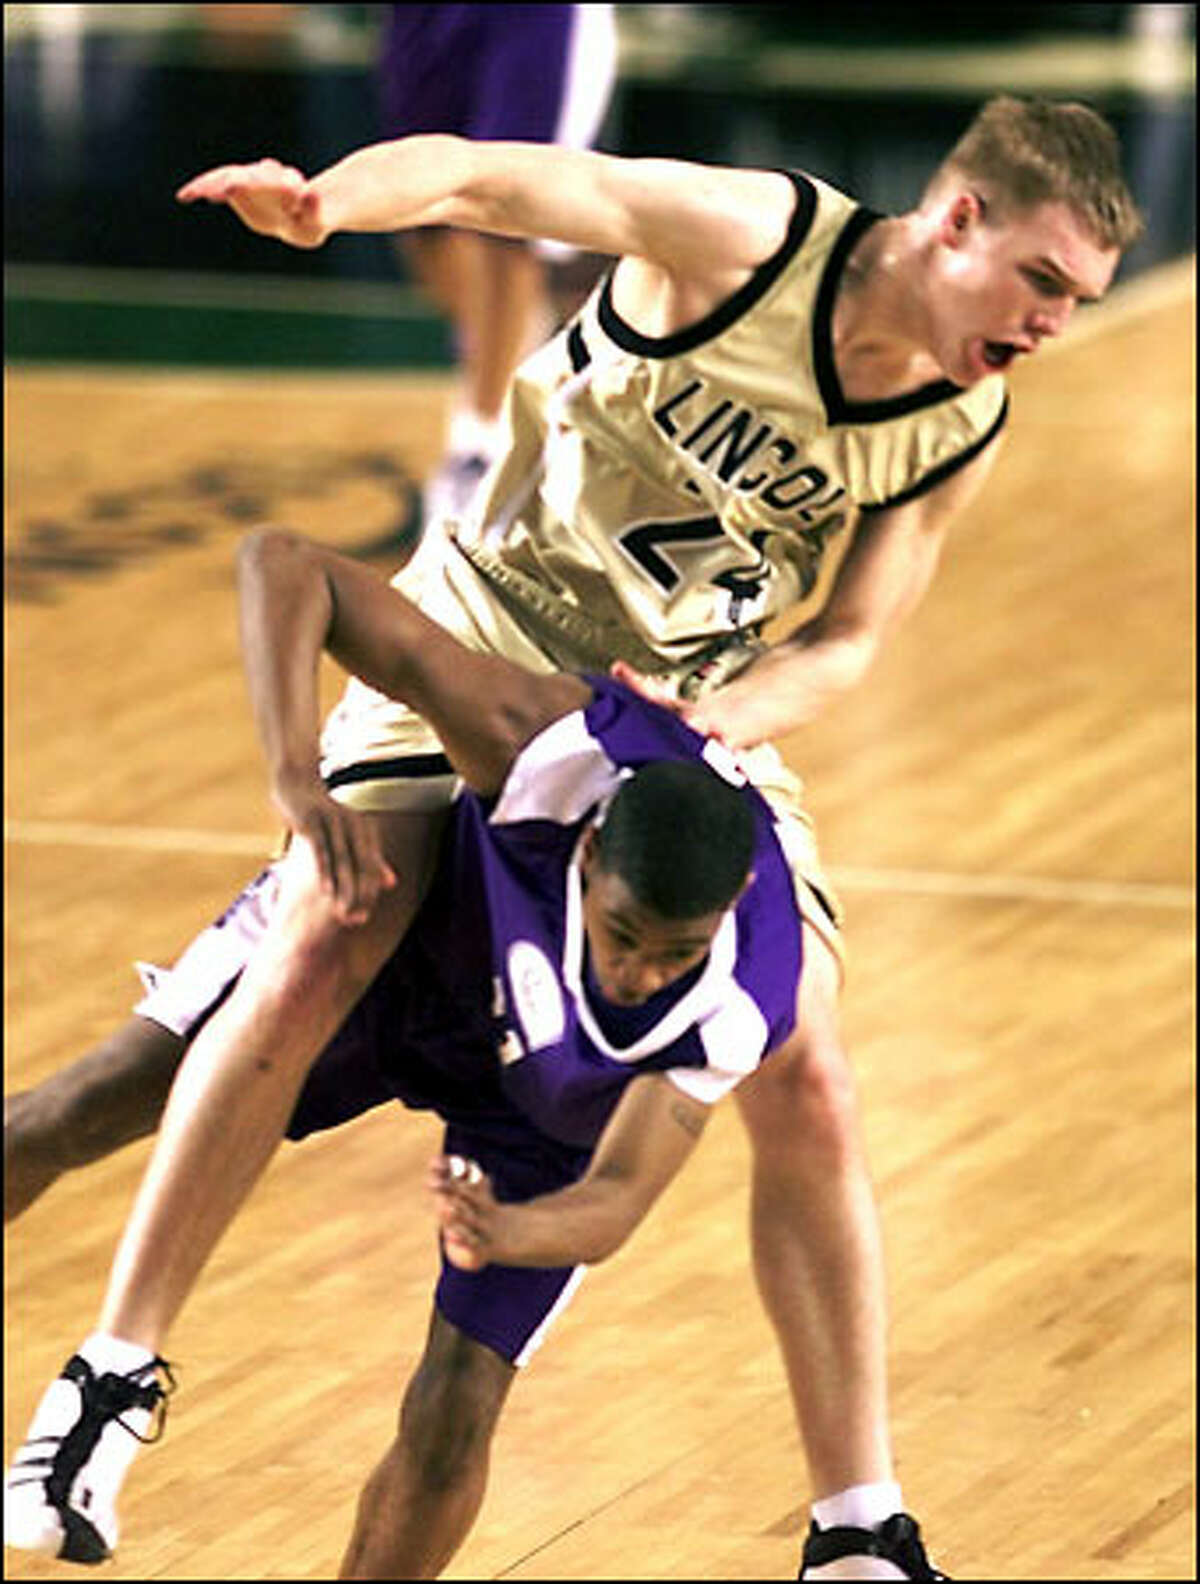 Lincoln's Ben Shelton ends up on top of Garfield's Quinnan Braxton as the pair raced for a errant pass during their playoff game at the Tacoma Dome Thursday March 8, 2002.